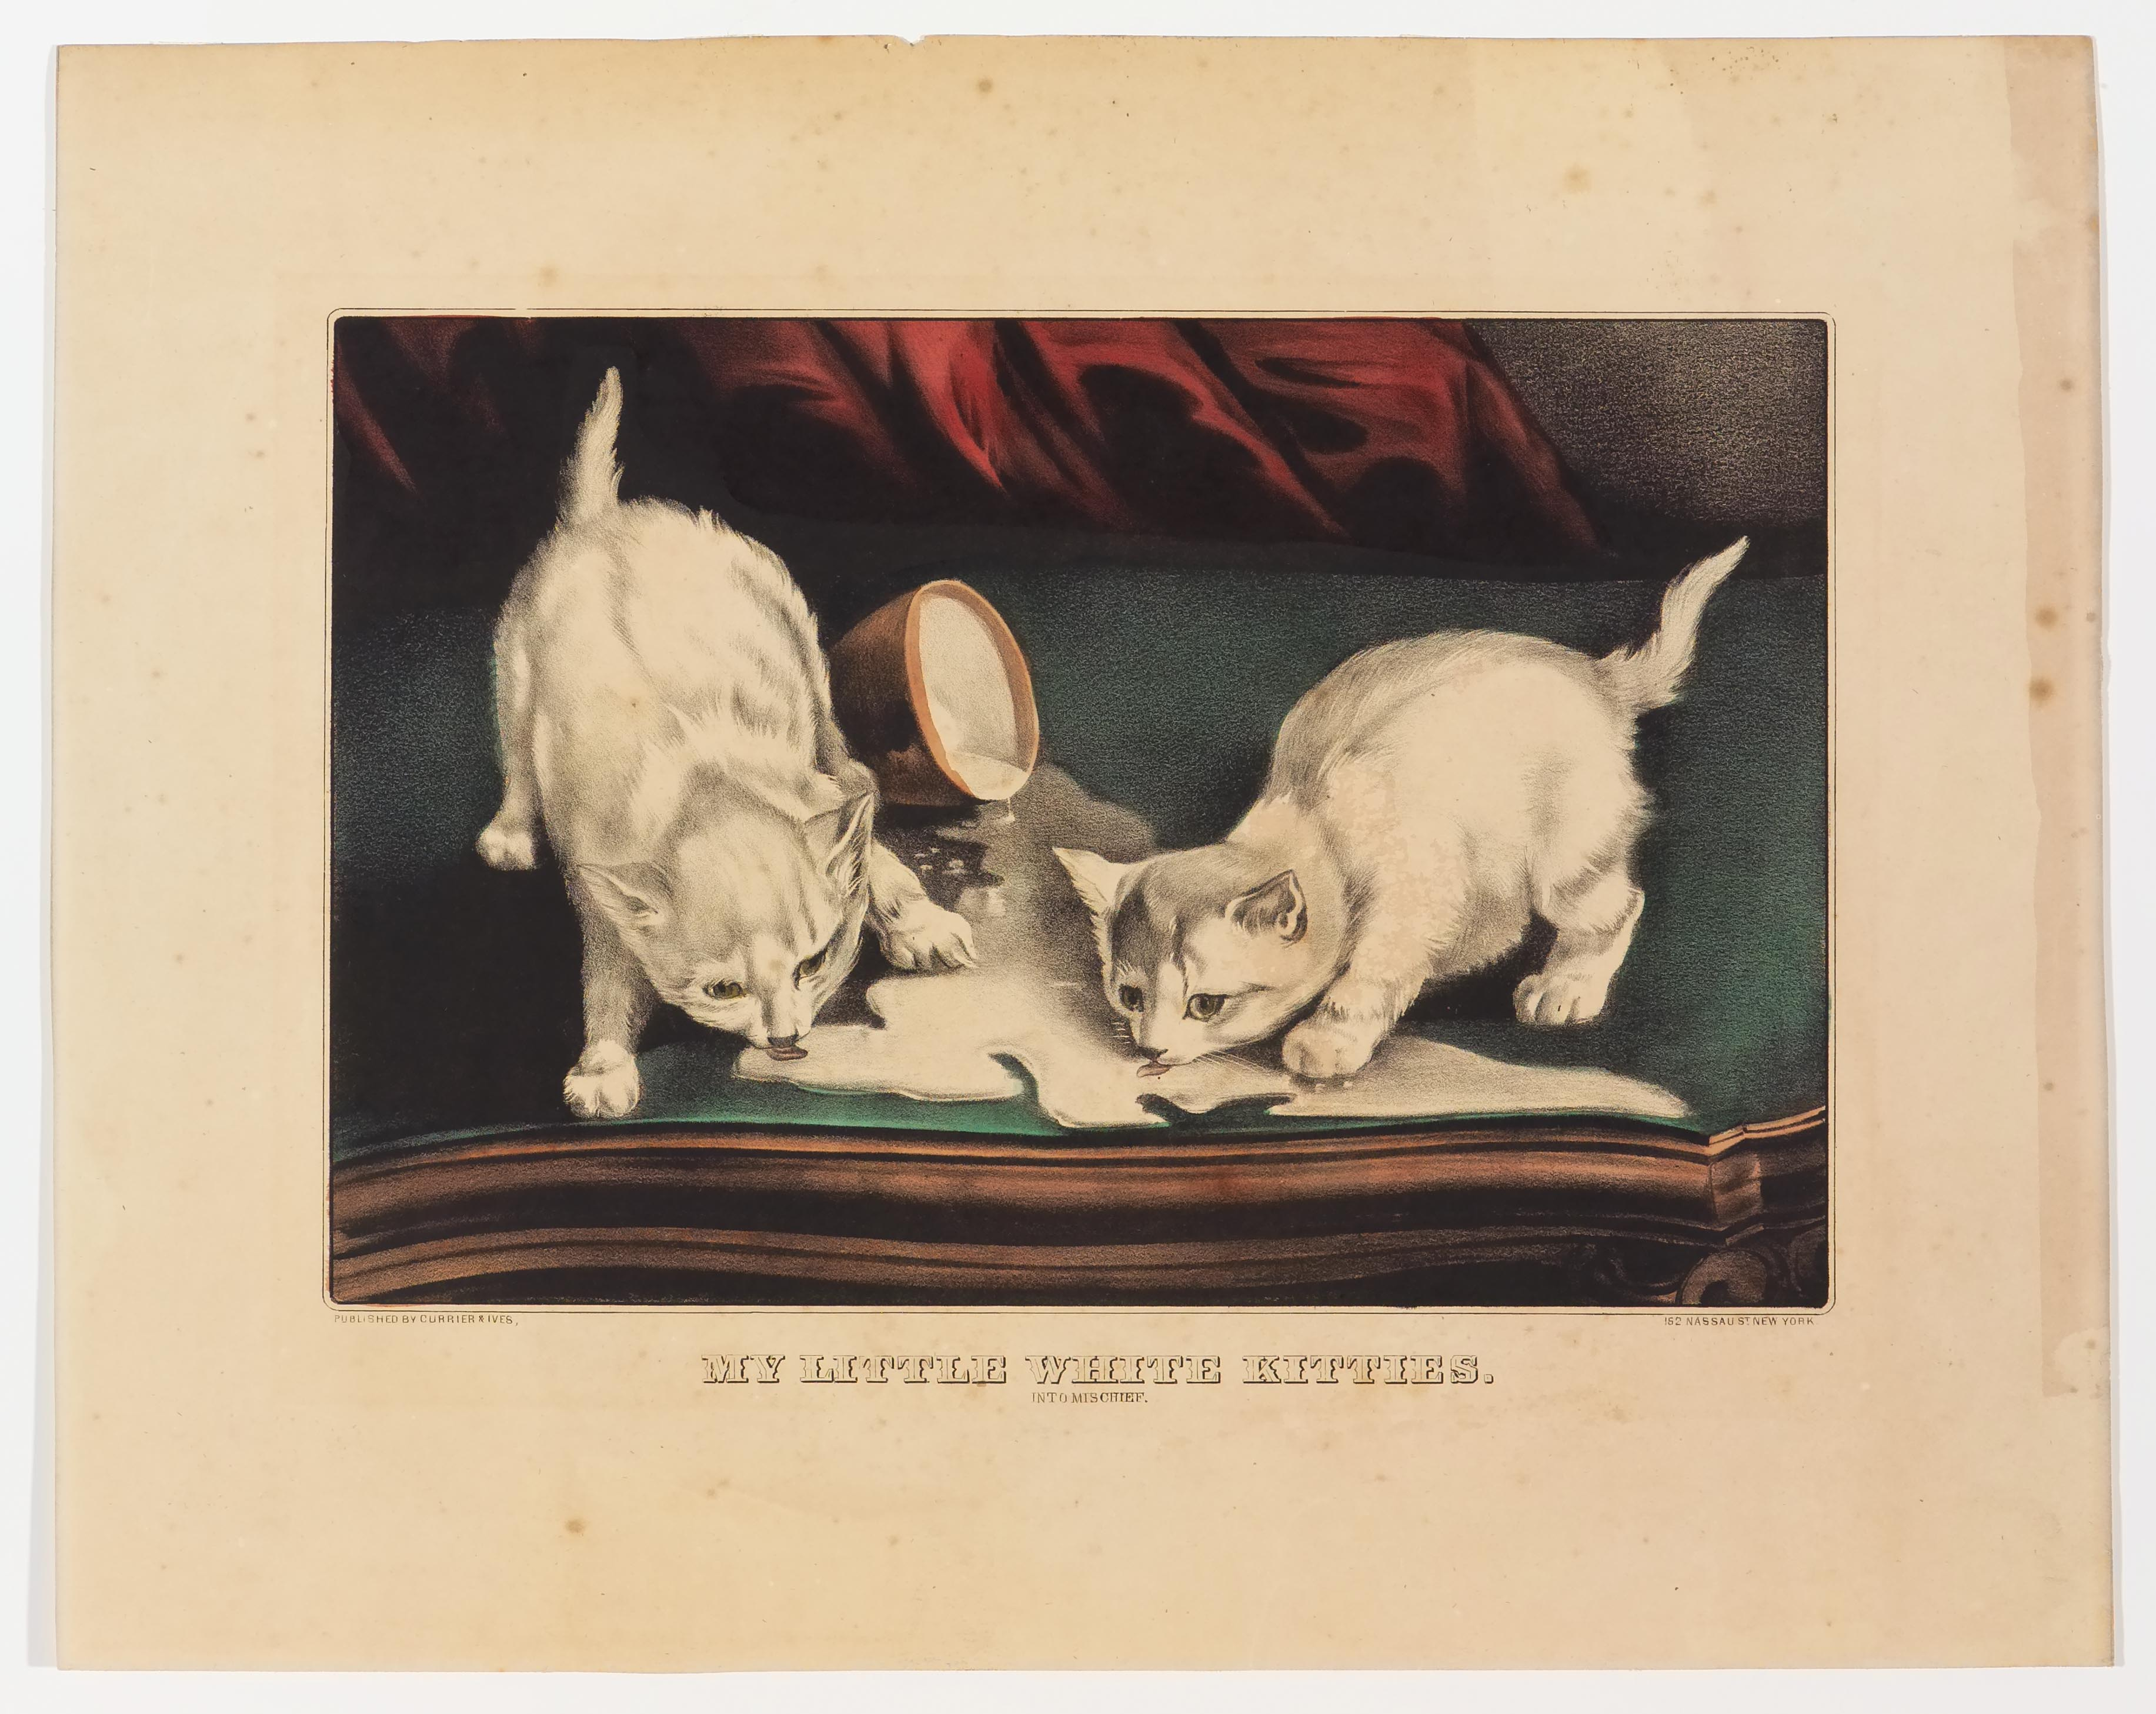 Two white kittens on a table top facing center licking up milk spilled out of a bowl in center